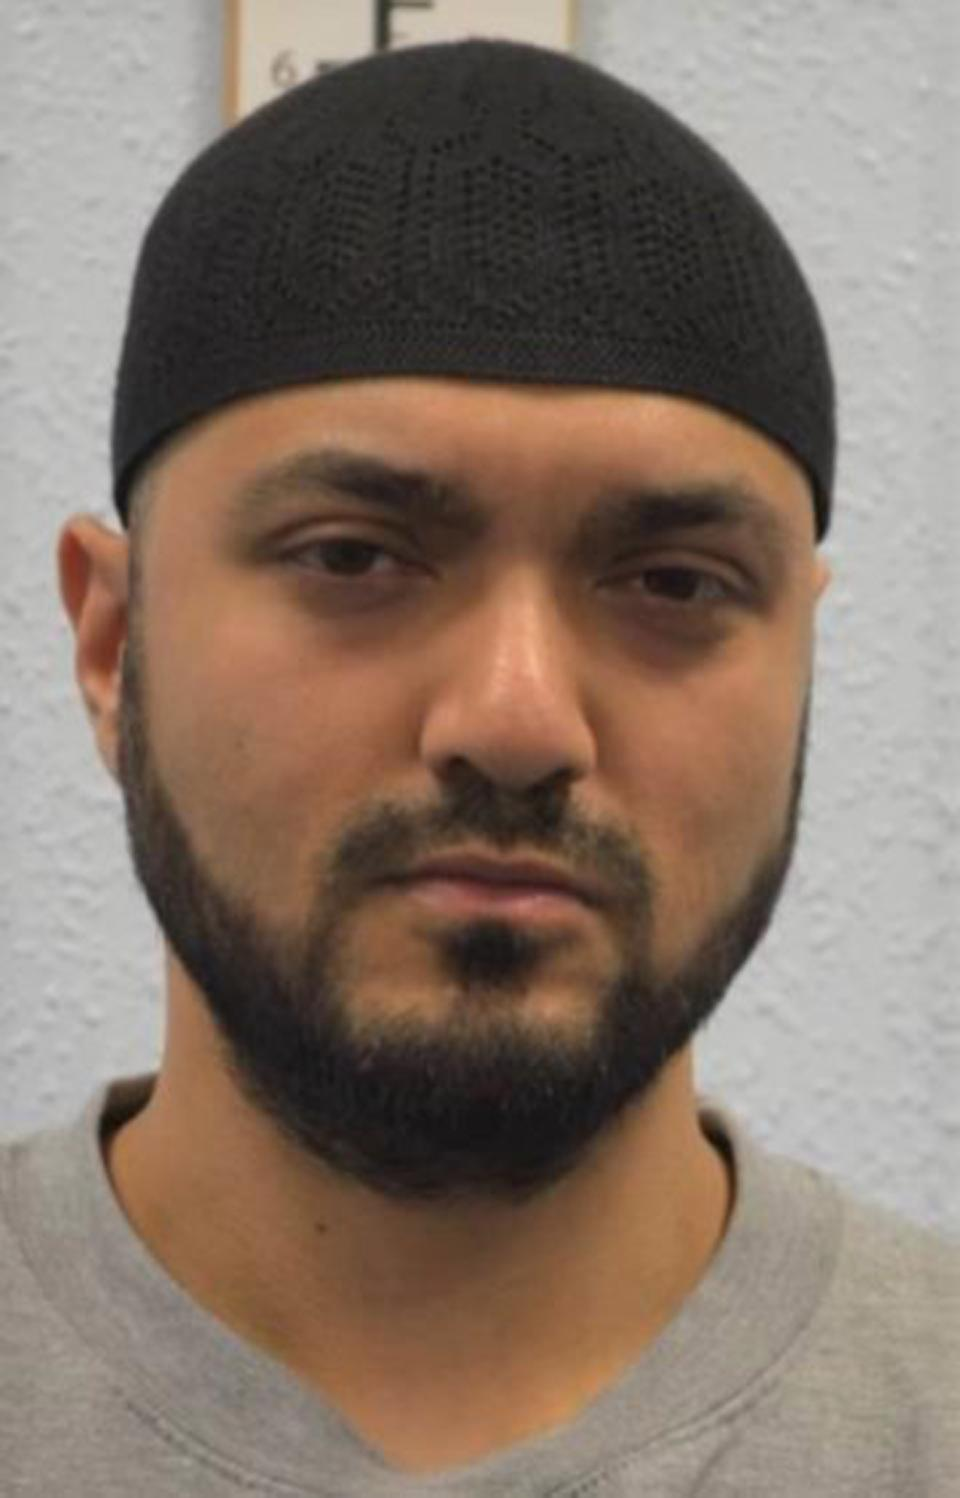 Undated handout photo issued by the Metropolitan Police of former Uber driver Mohiussunnath Chowdhury who has been jailed at Woolwich Crown Court for life with a minimum term of 25 years after being convicted of planning a terror attack at busy London tourist attractions.